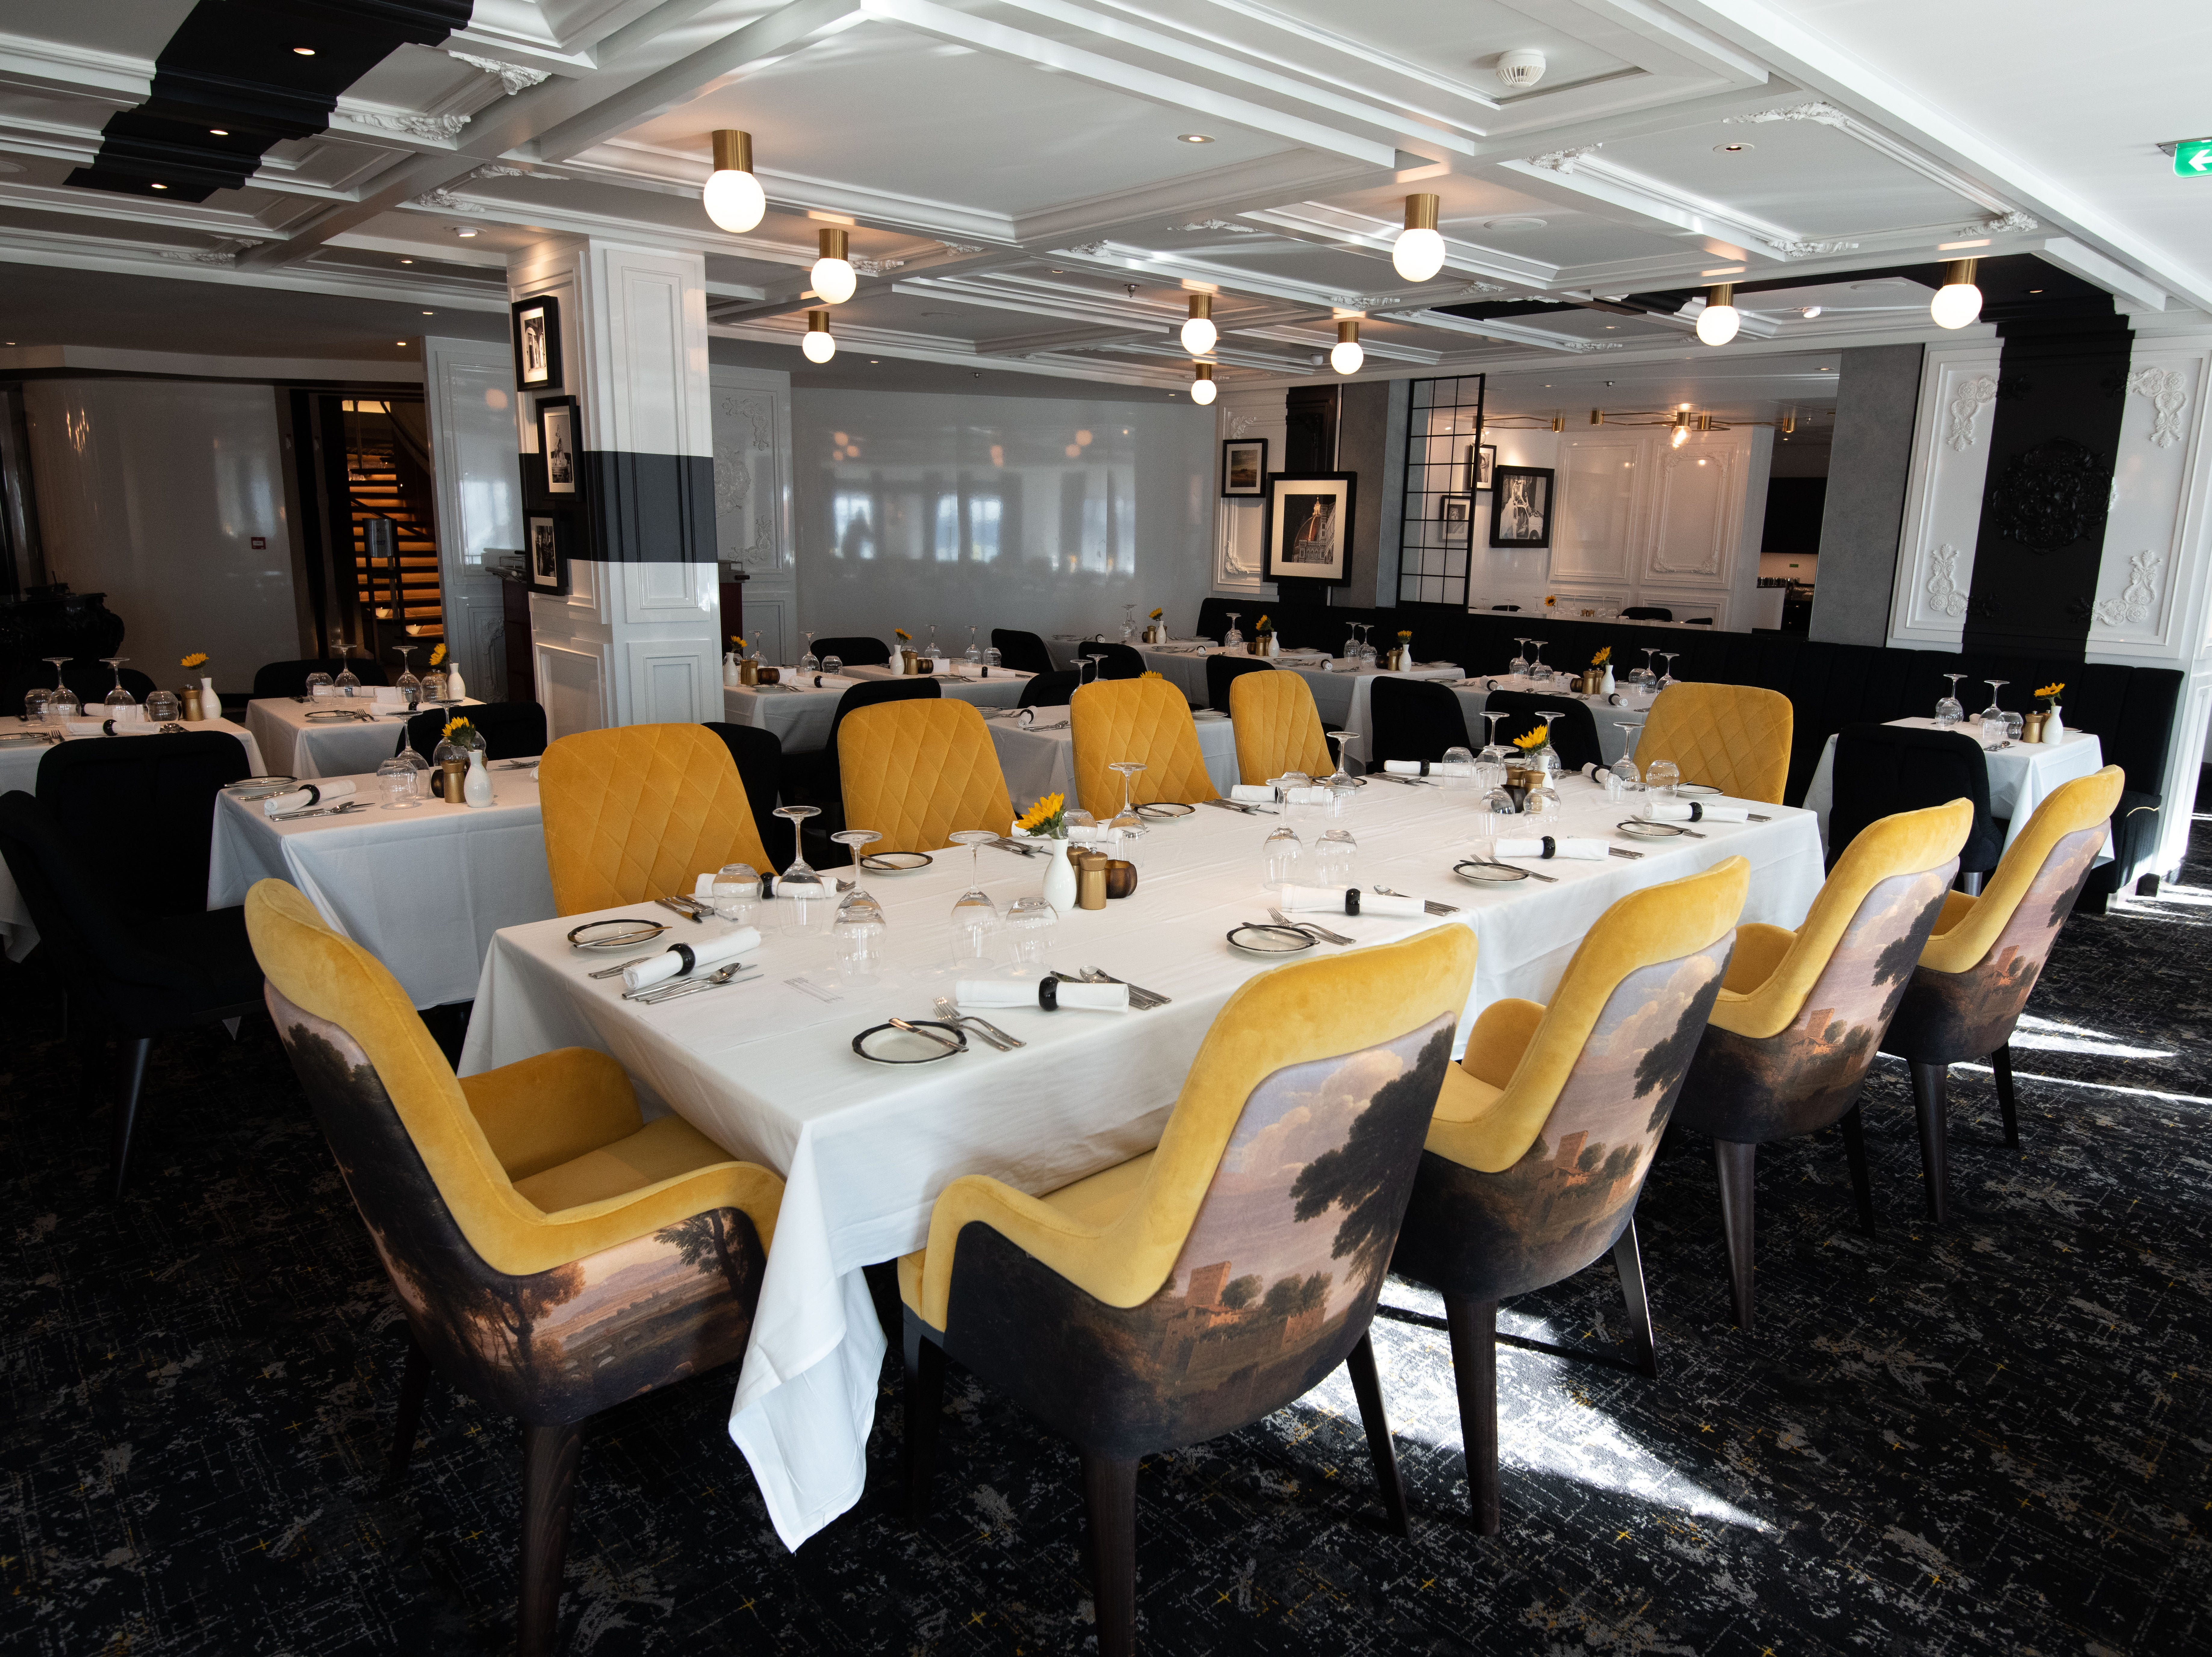 Located on Deck 3, Tuscan Restaurant has a capacity for 344 people.